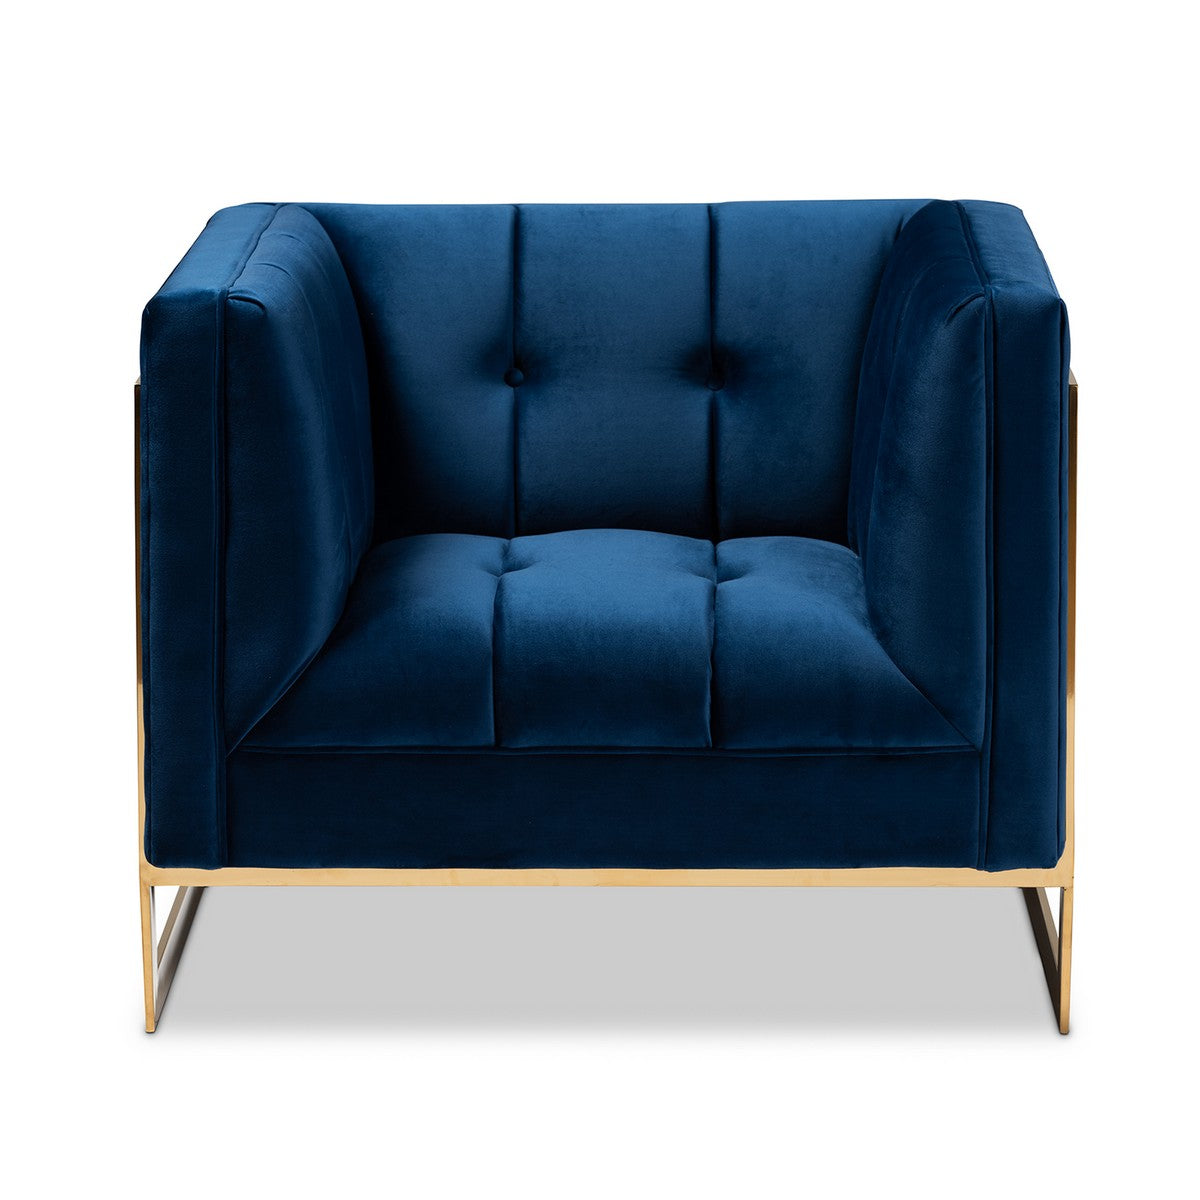 Baxton Studio Ambra Glam and Luxe Royal Blue Velvet Fabric Upholstered and Button Tufted Armchair with Gold-Tone Frame Baxton Studio-chairs-Minimal And Modern - 1